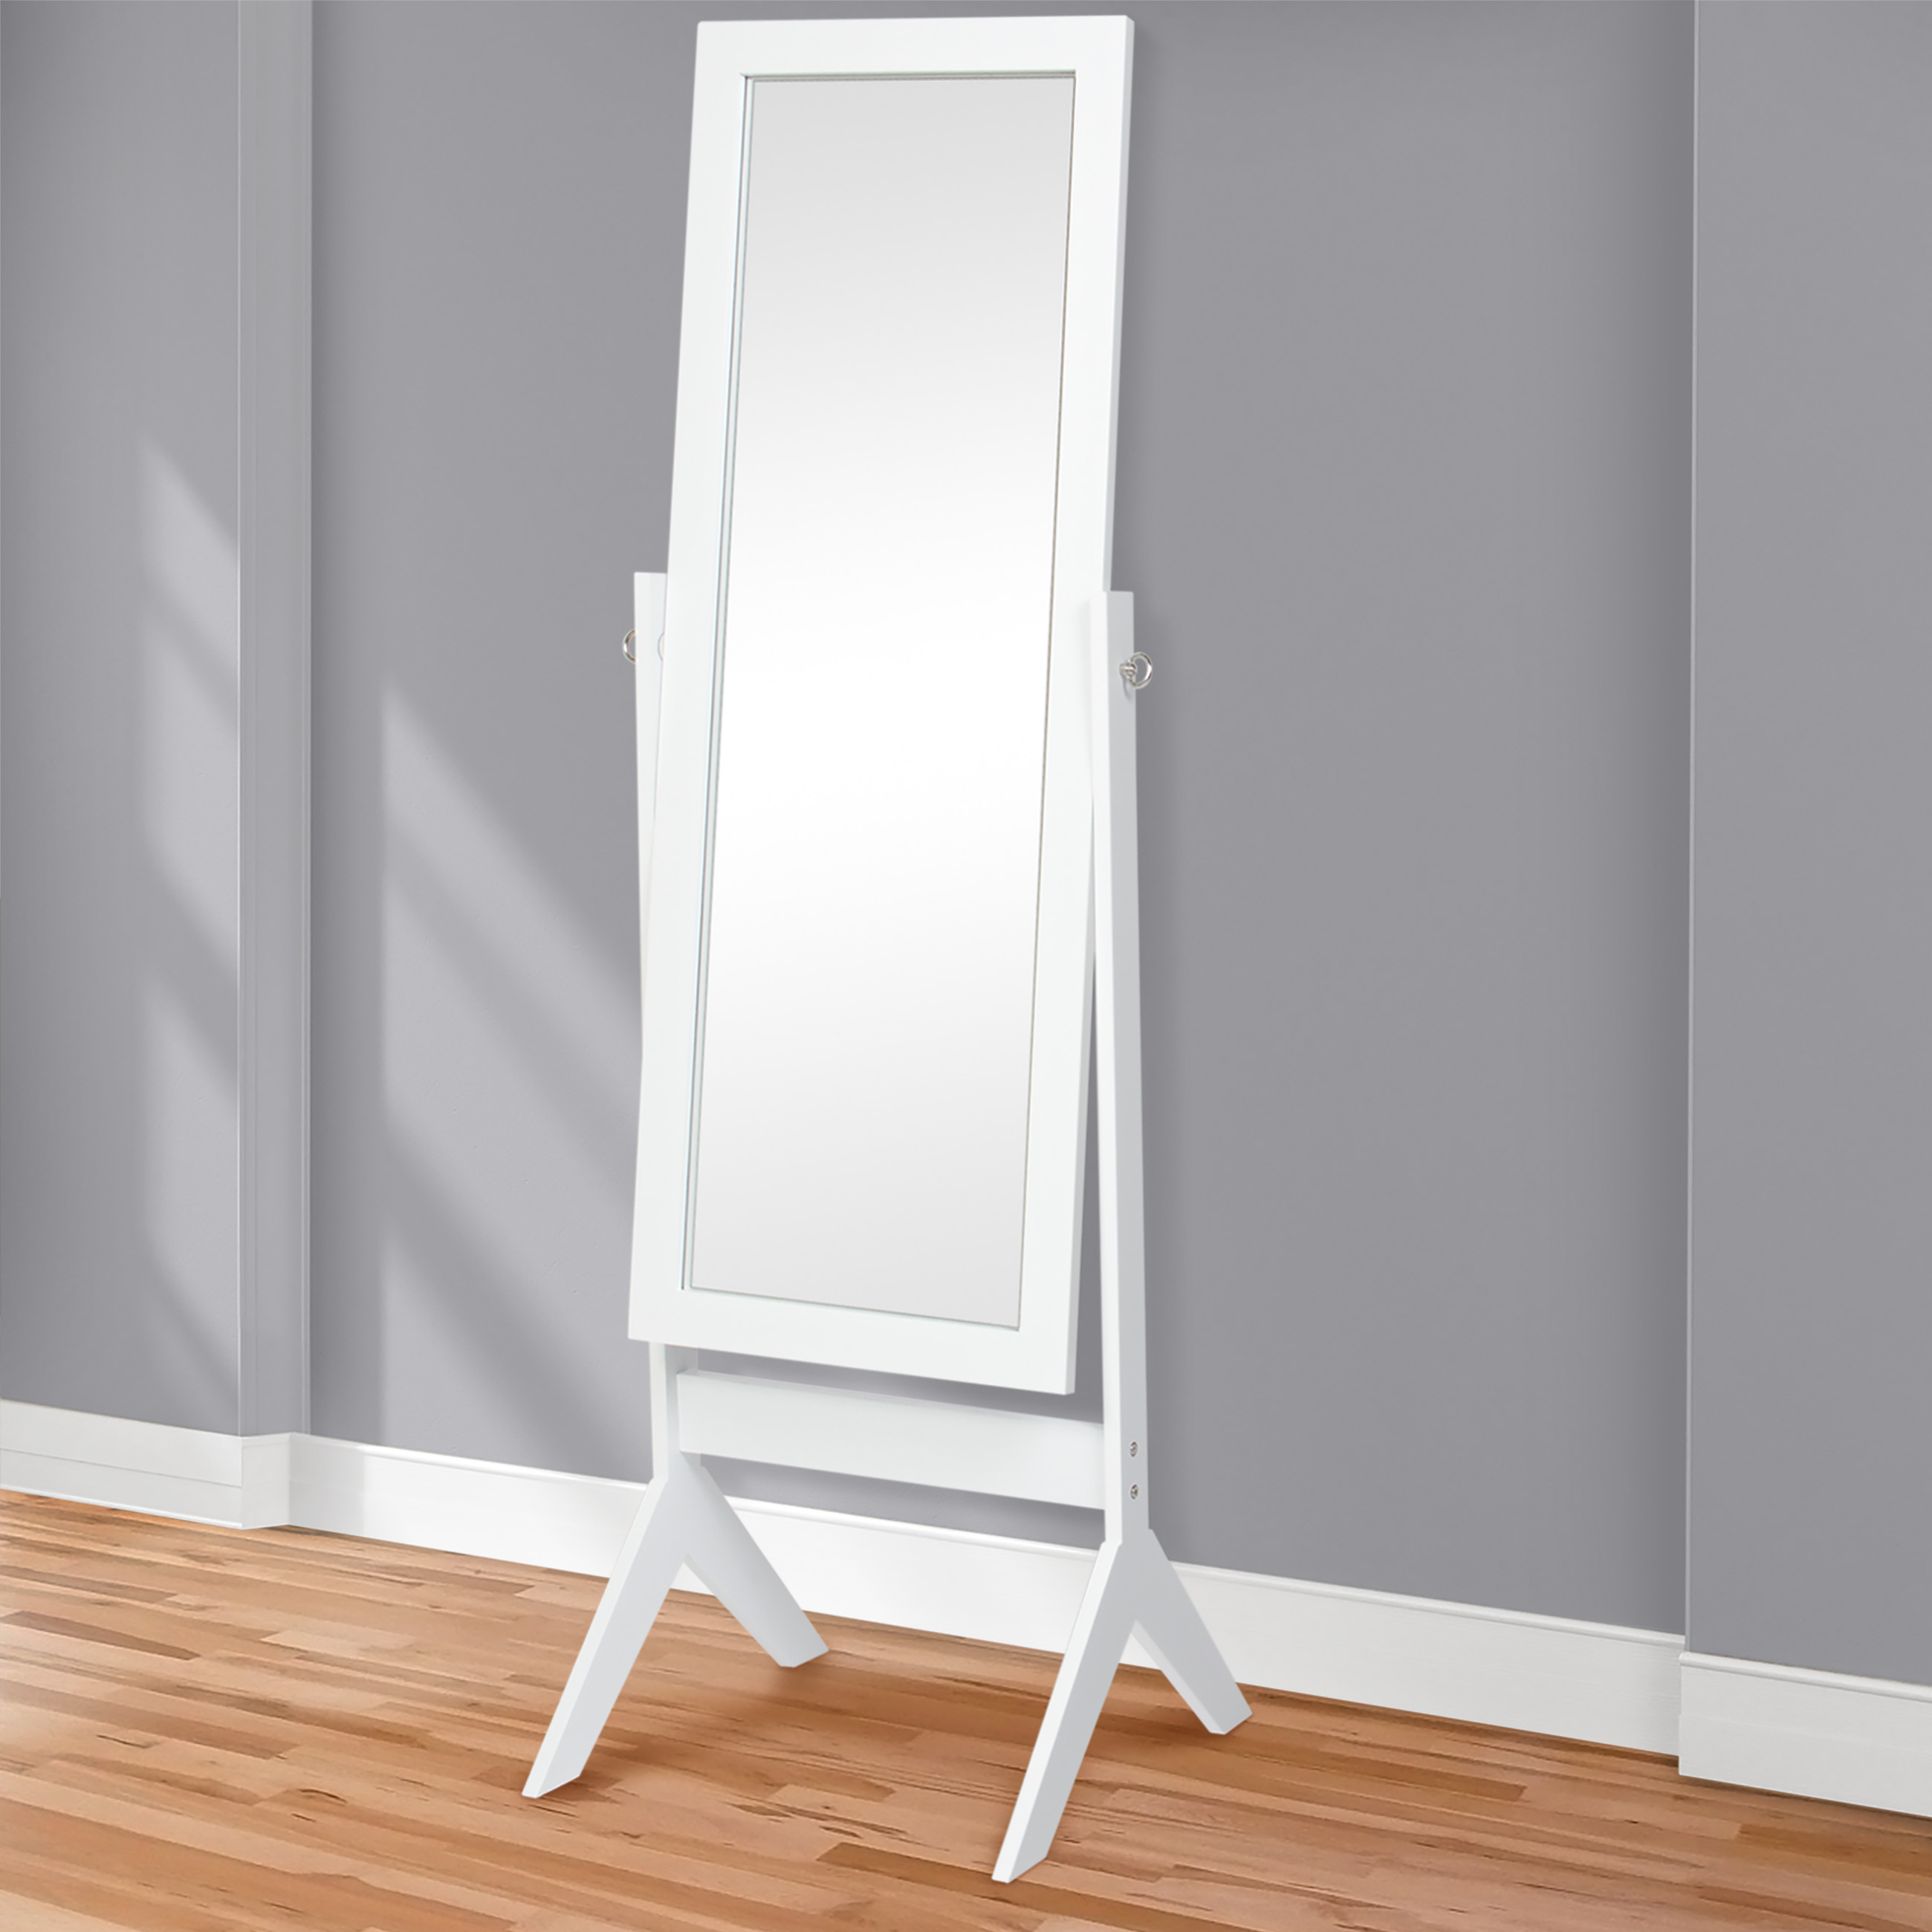 Best Choice Products 65 Full Length Cheval Floor Mirror Bedroom Home Decor White